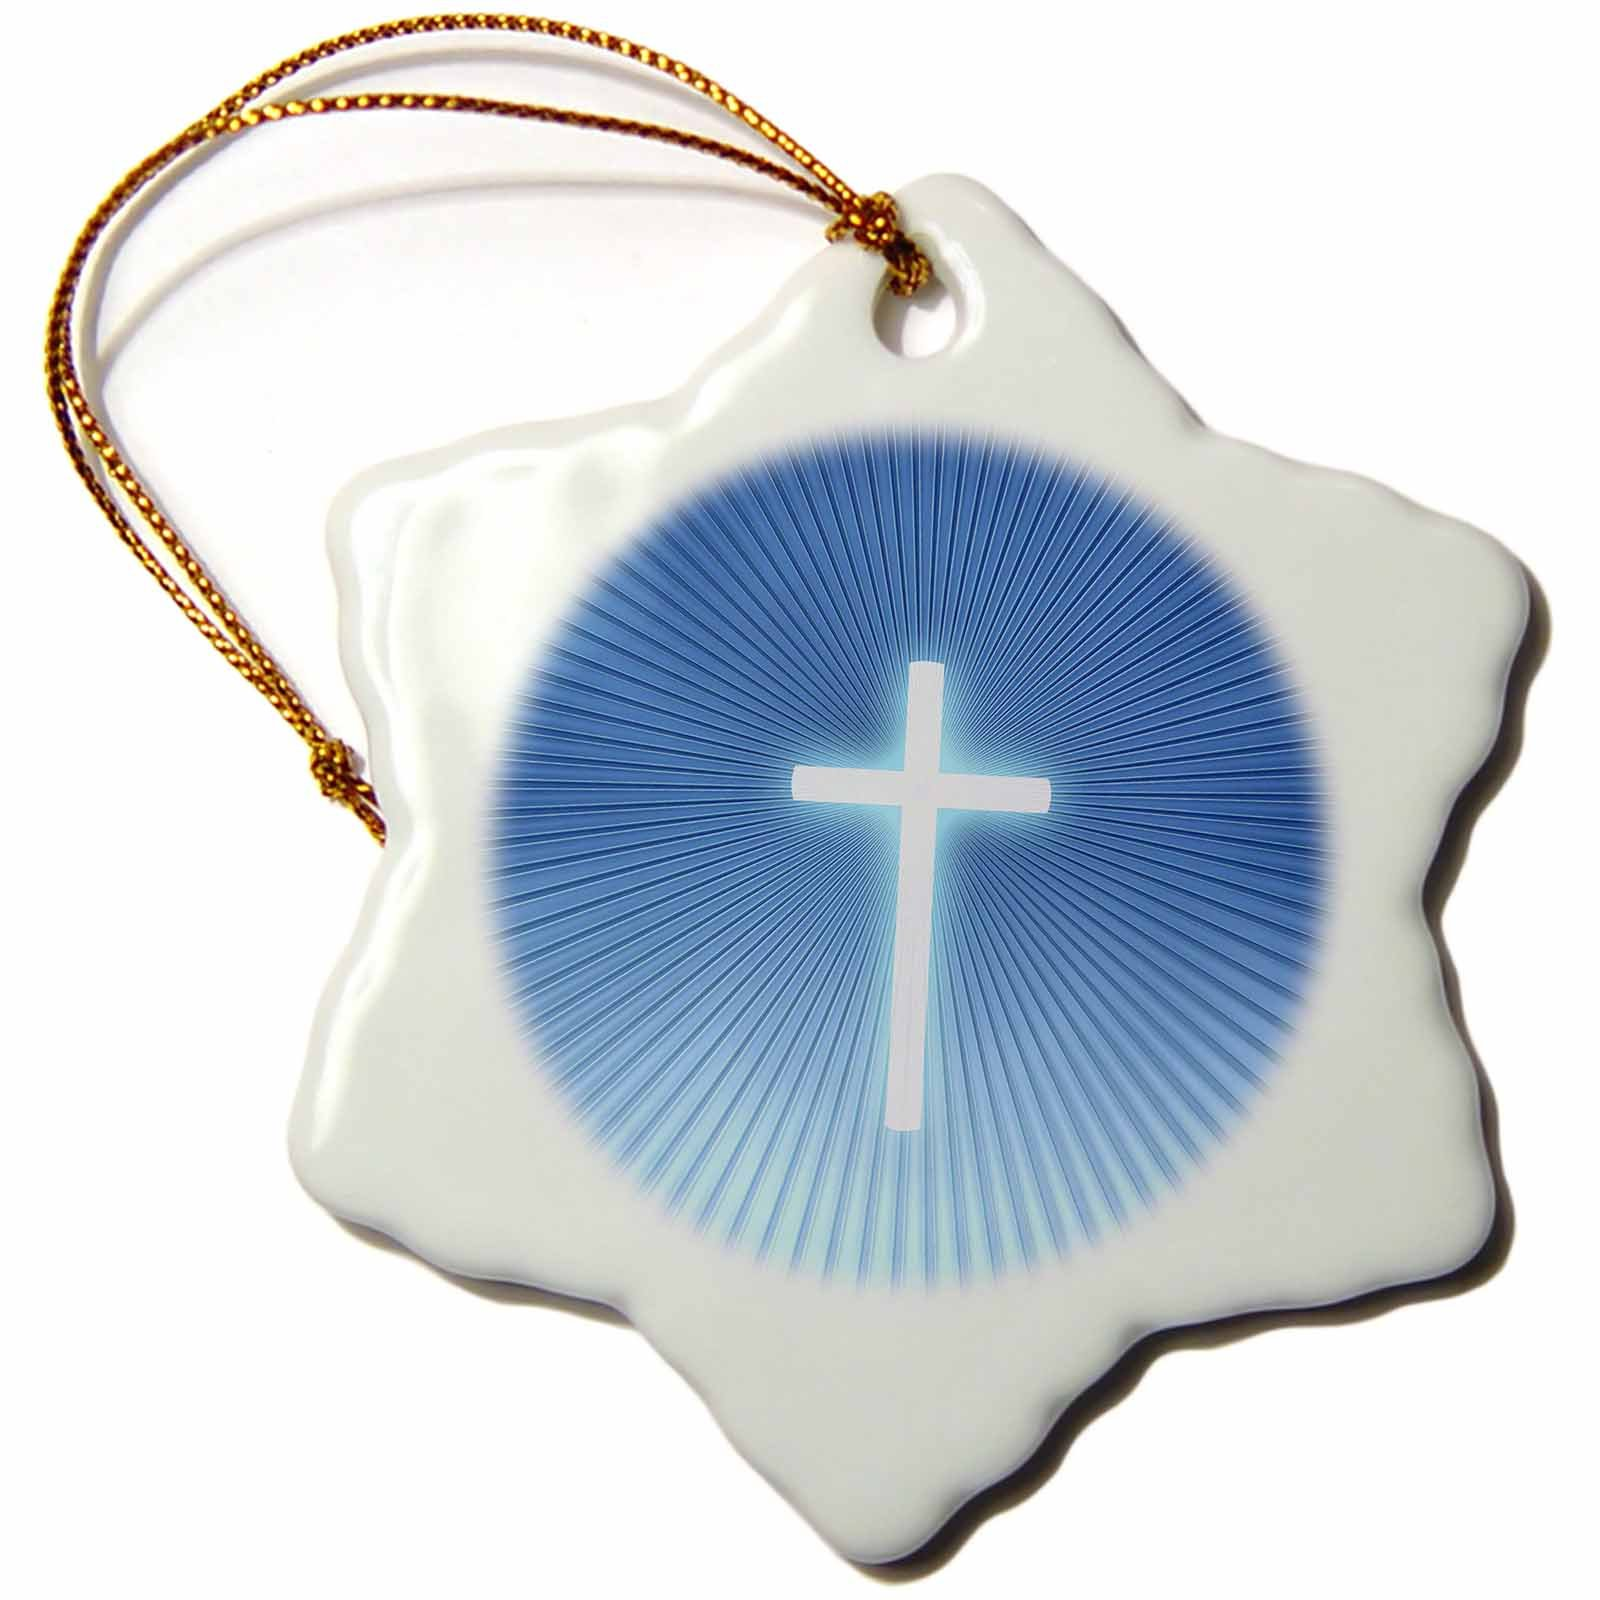 3dRose orn_41757_1 Christian Cross Symbol on Blue Backround with Rays-Snowflake Ornament, 3-Inch, Porcelain